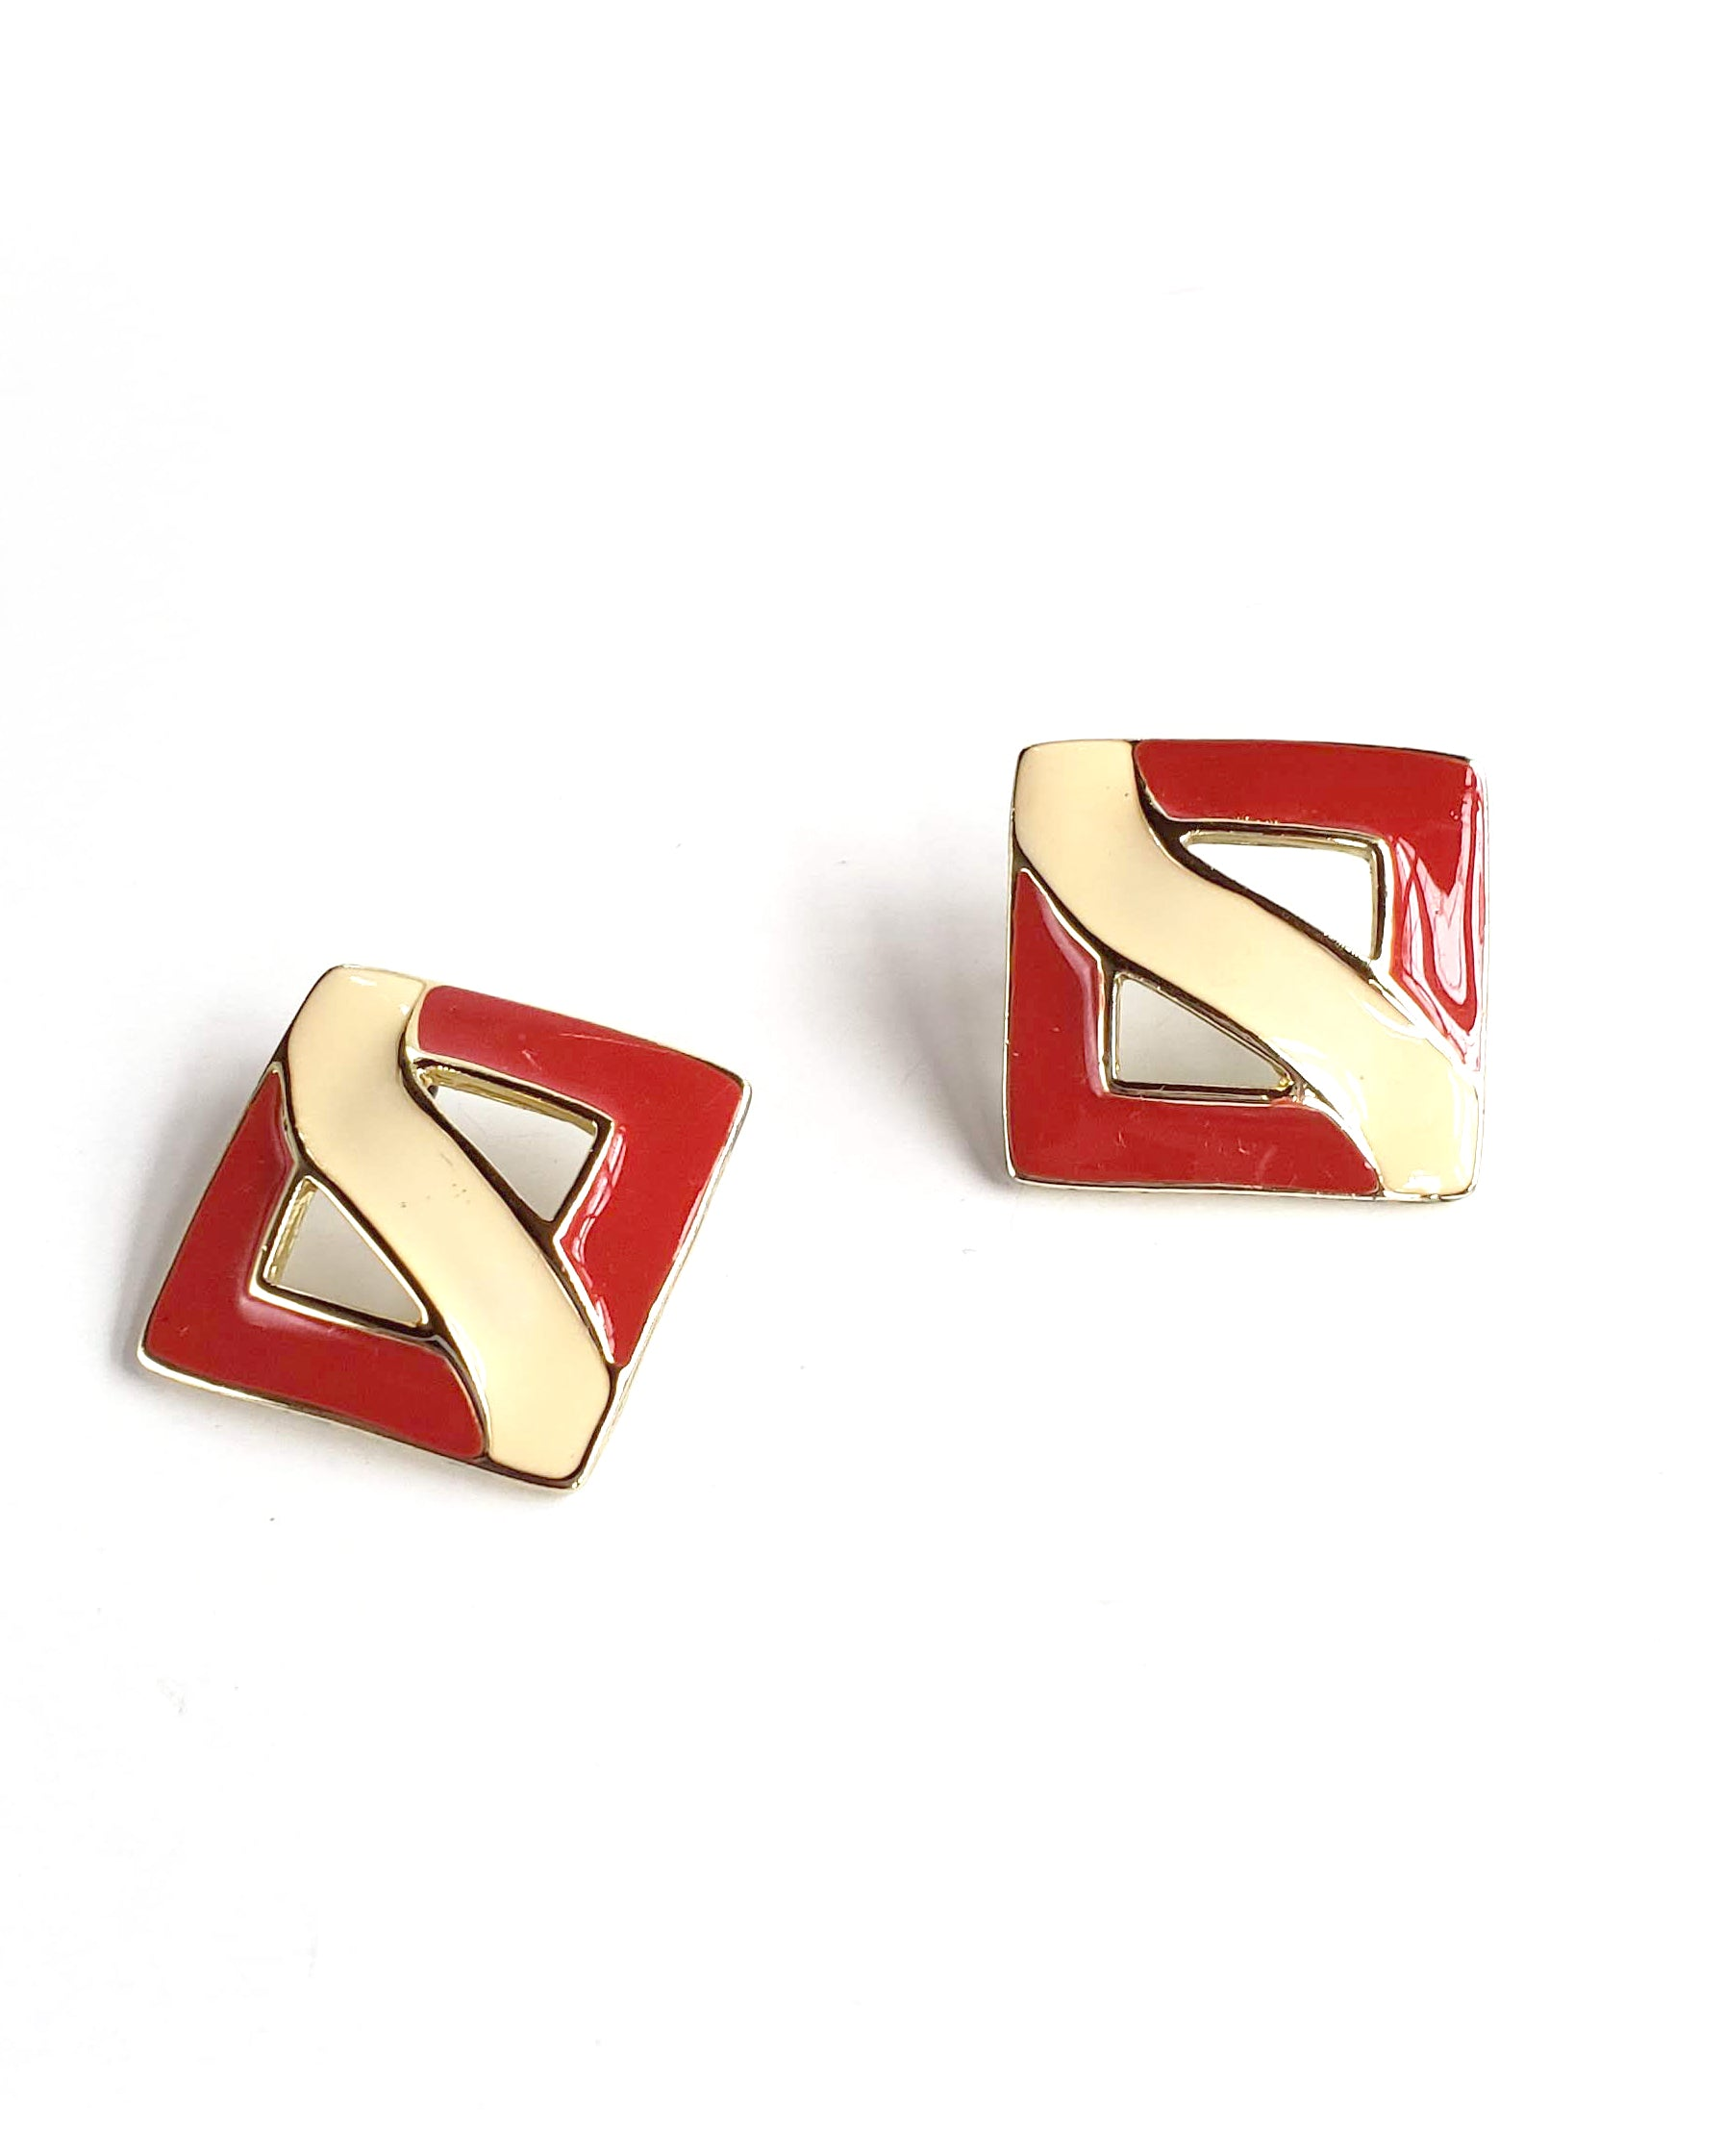 80s Red & Cream Enamel Earrings